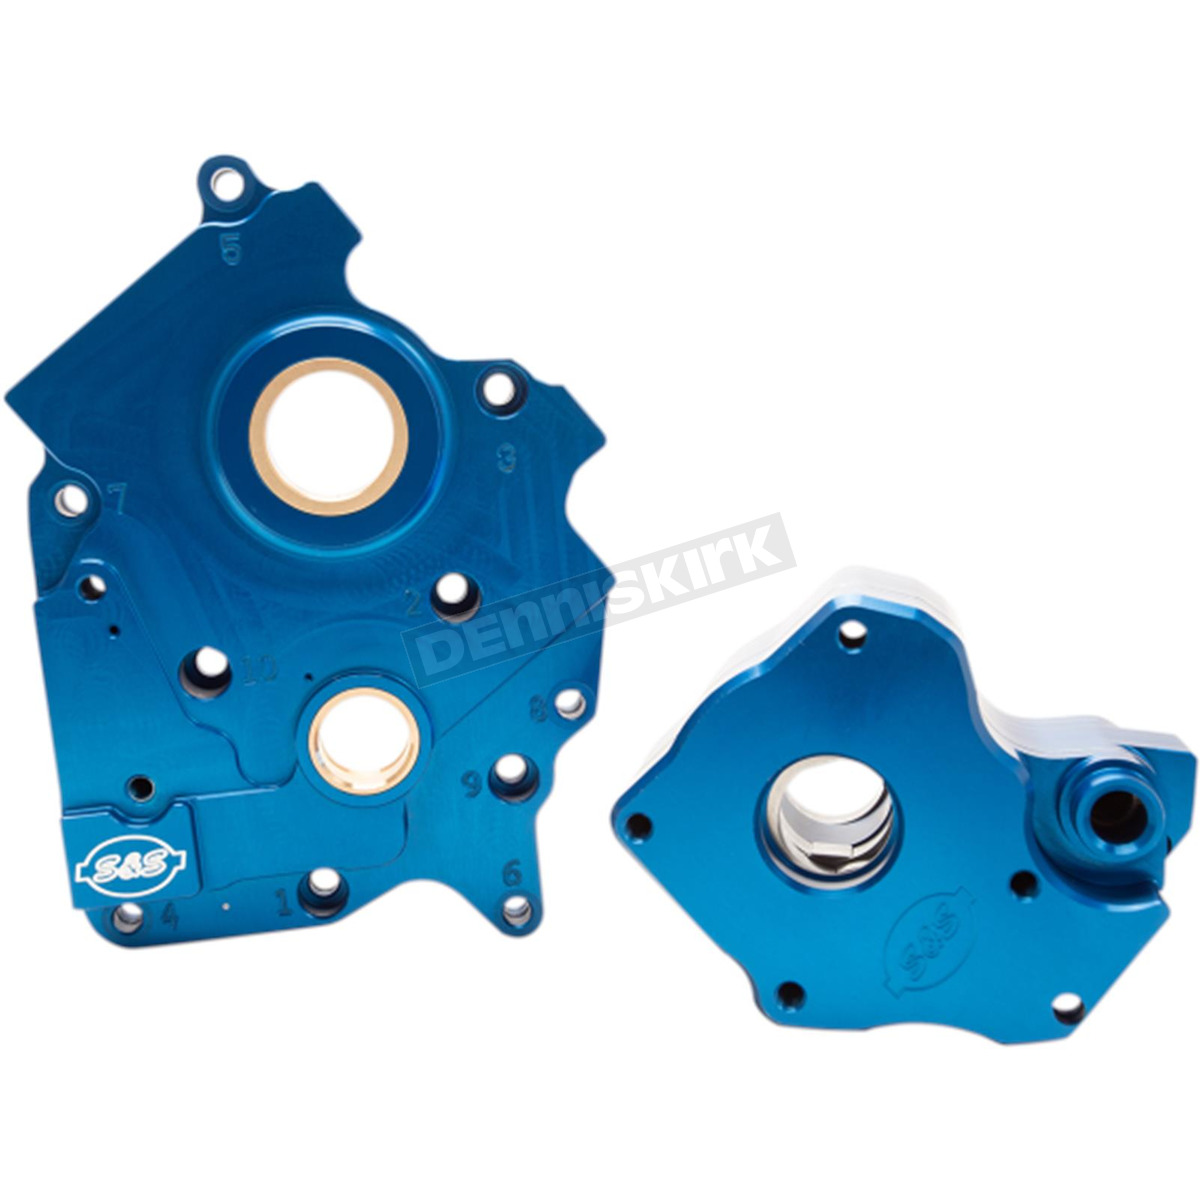 Blue Oil-Cooled M8 Cam Plate and Oil Pump Kit - 310-0998A